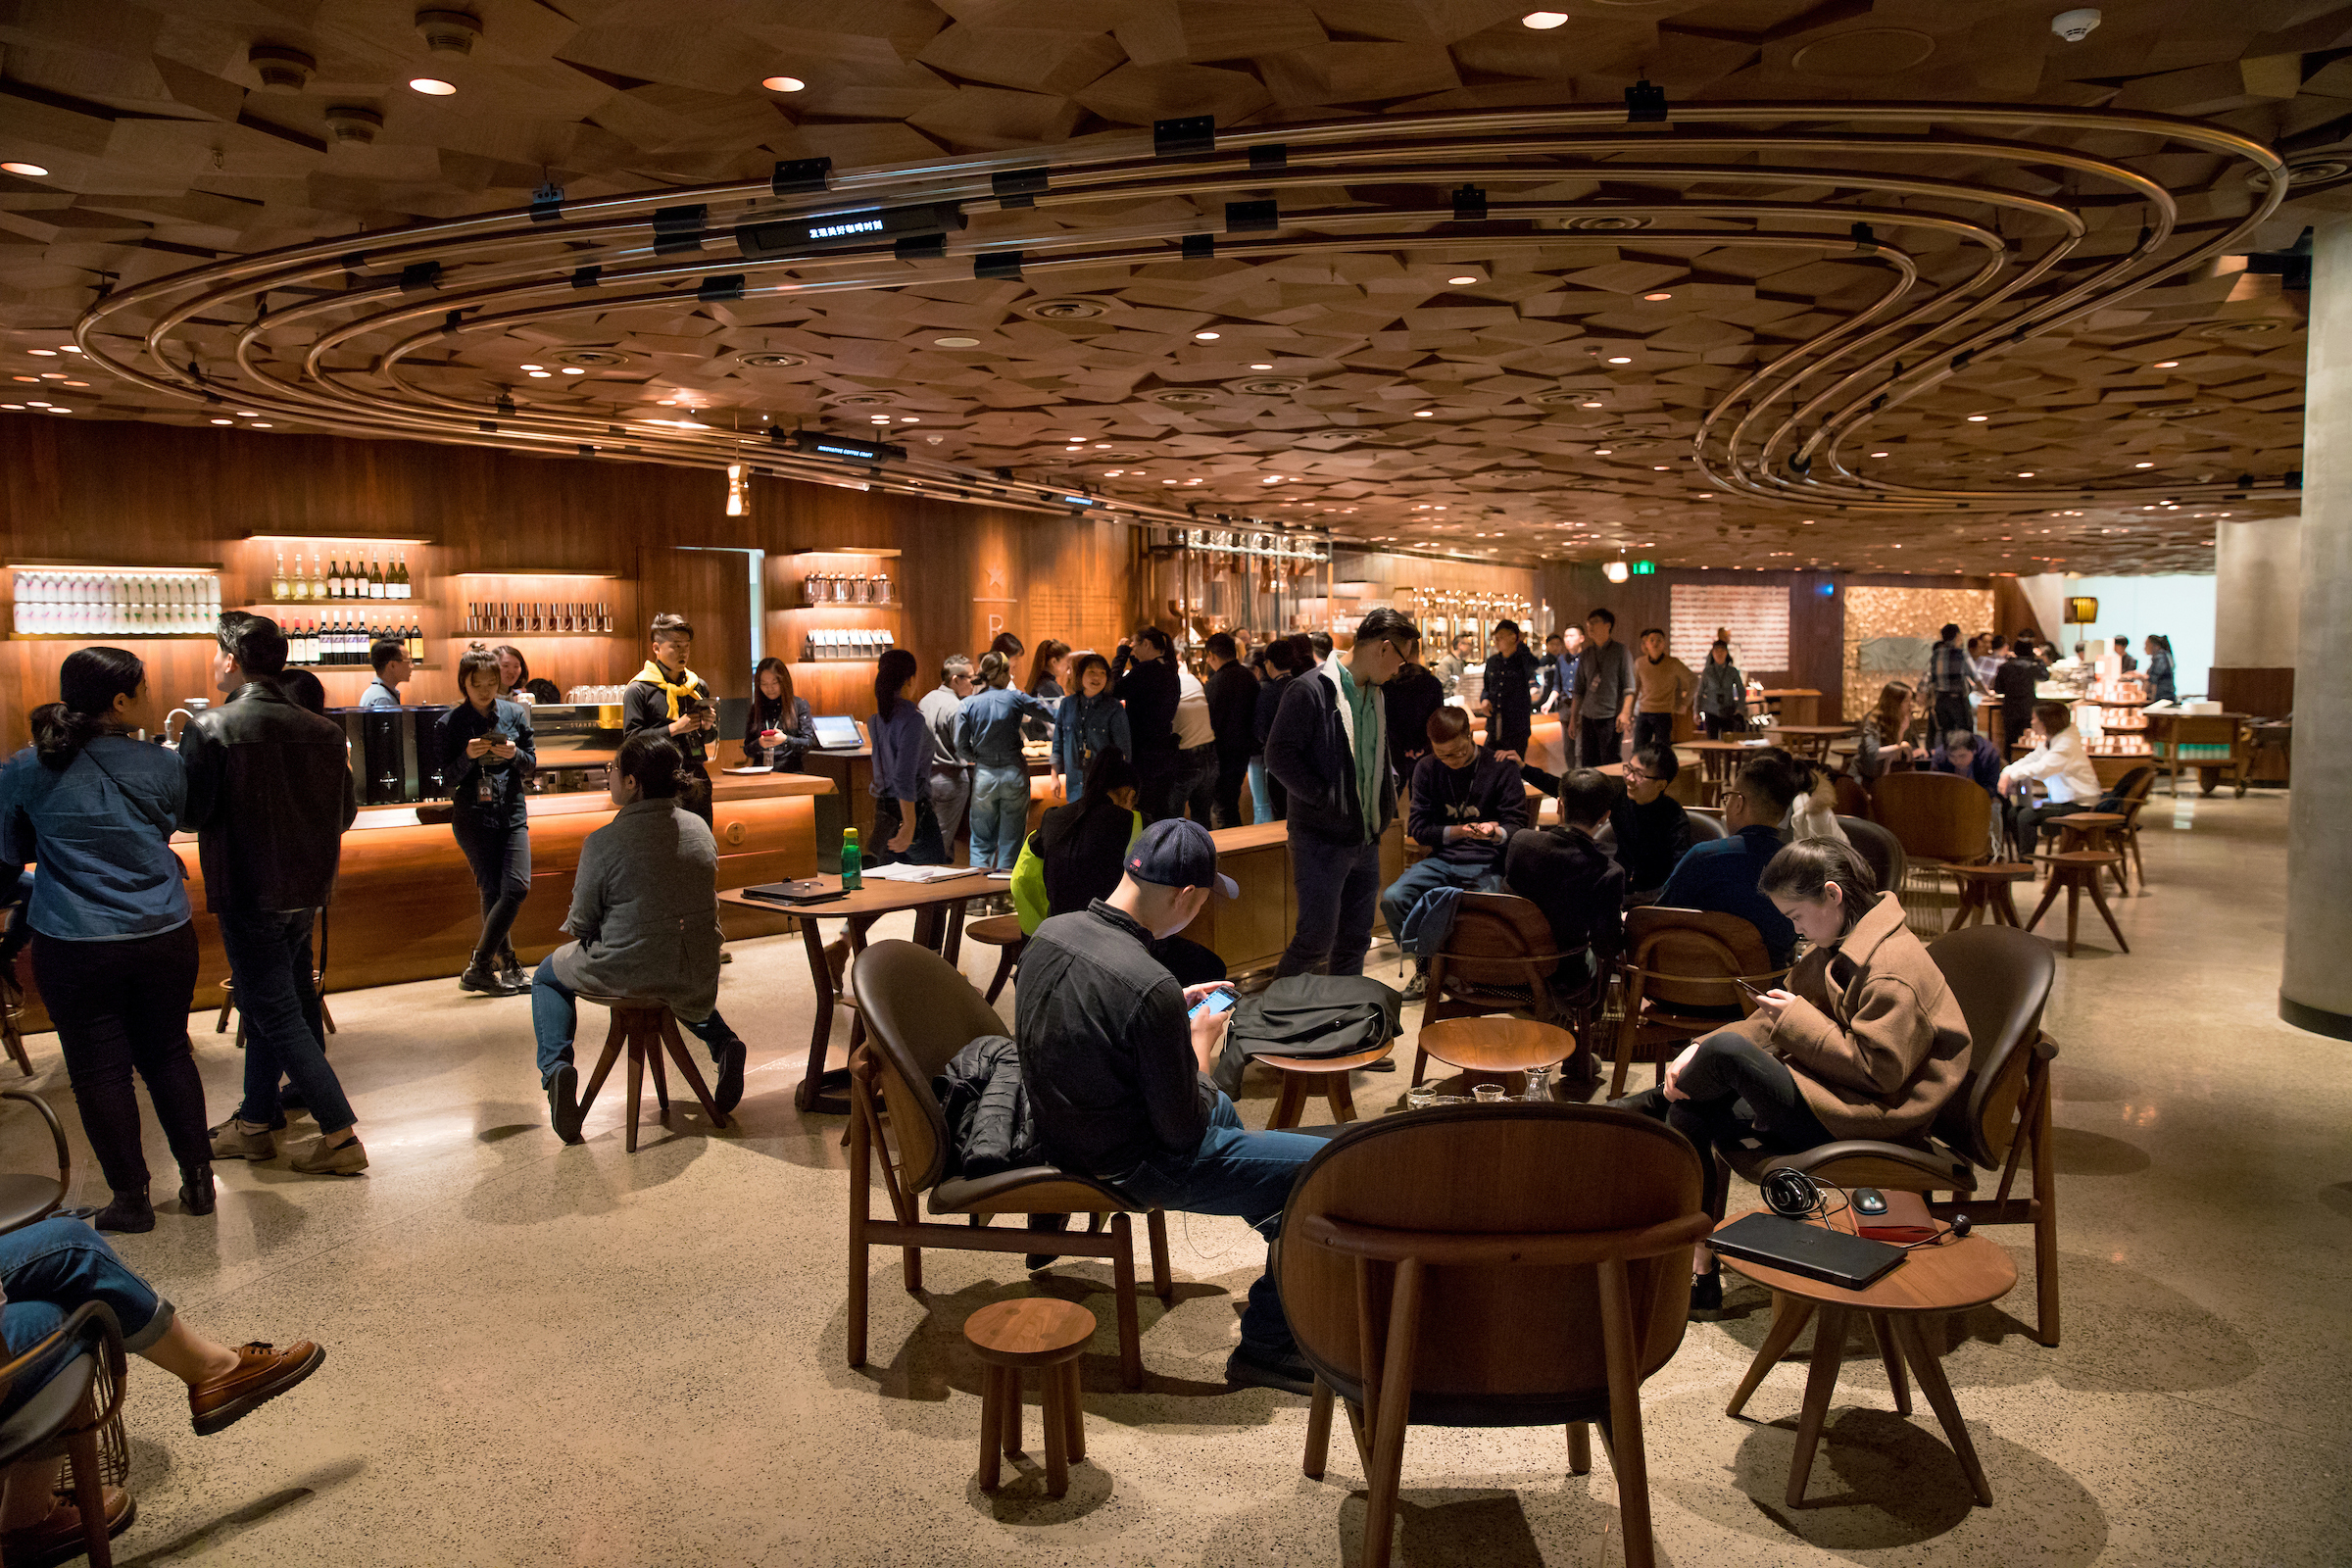 People gather in the new Starbucks Roastery in Shanghai, China.